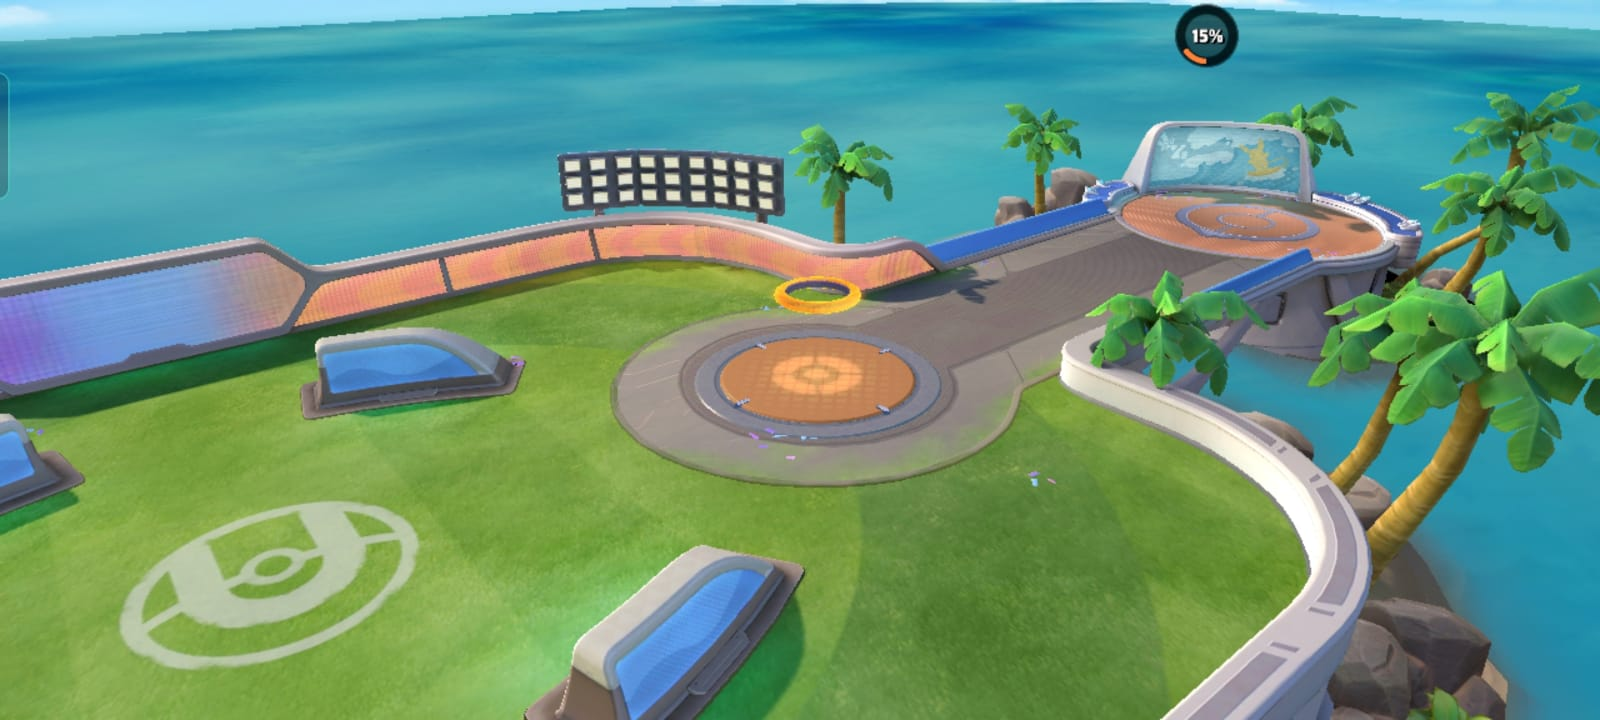 Pokémon UNITE APK v1.2.1.2 and OBB download for Android 3